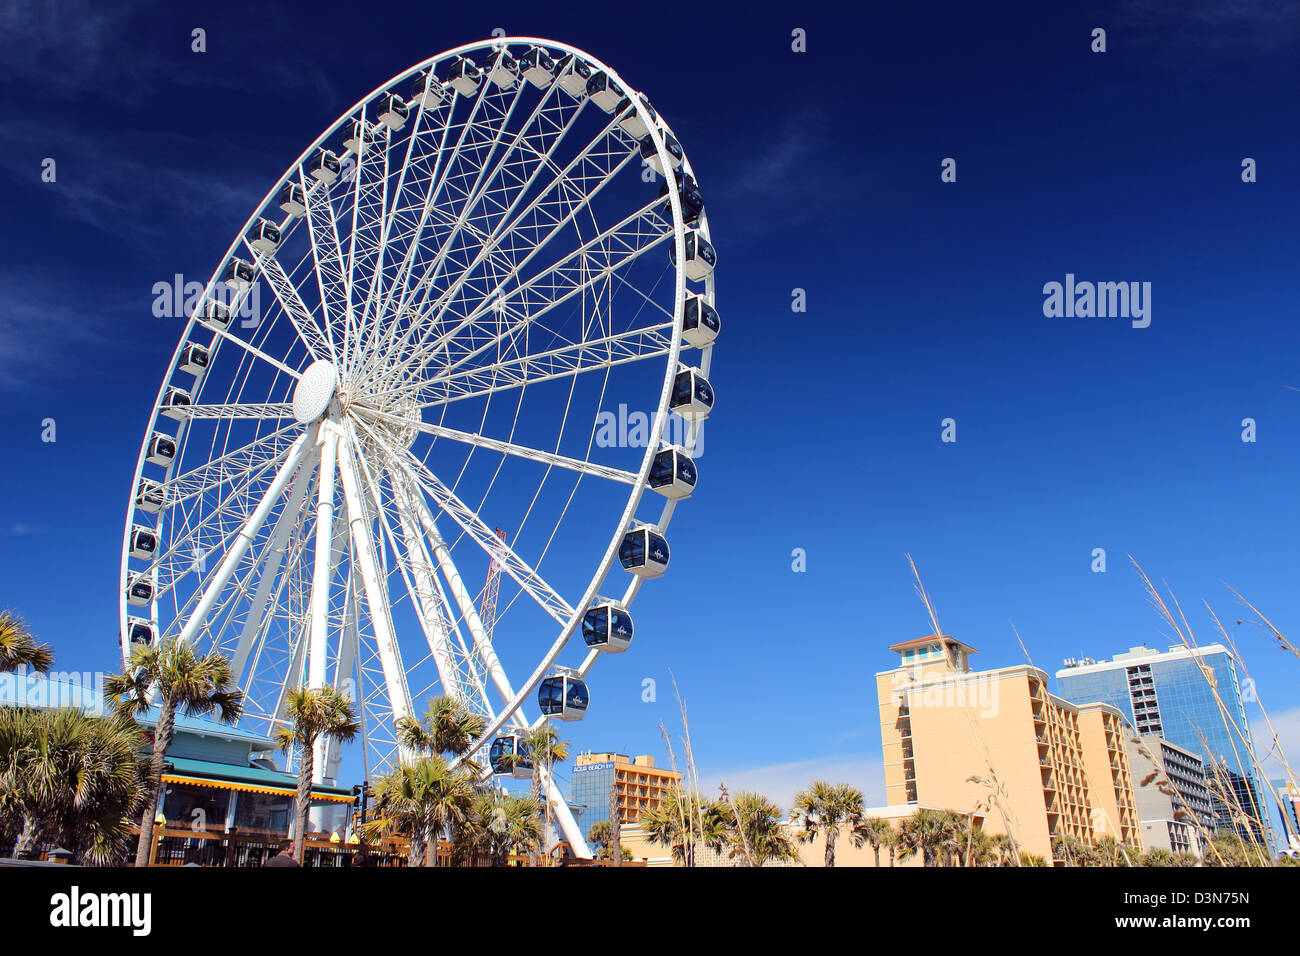 The Sky Wheel On The Boardwalk In Myrtle Beach Sc Usa Against A